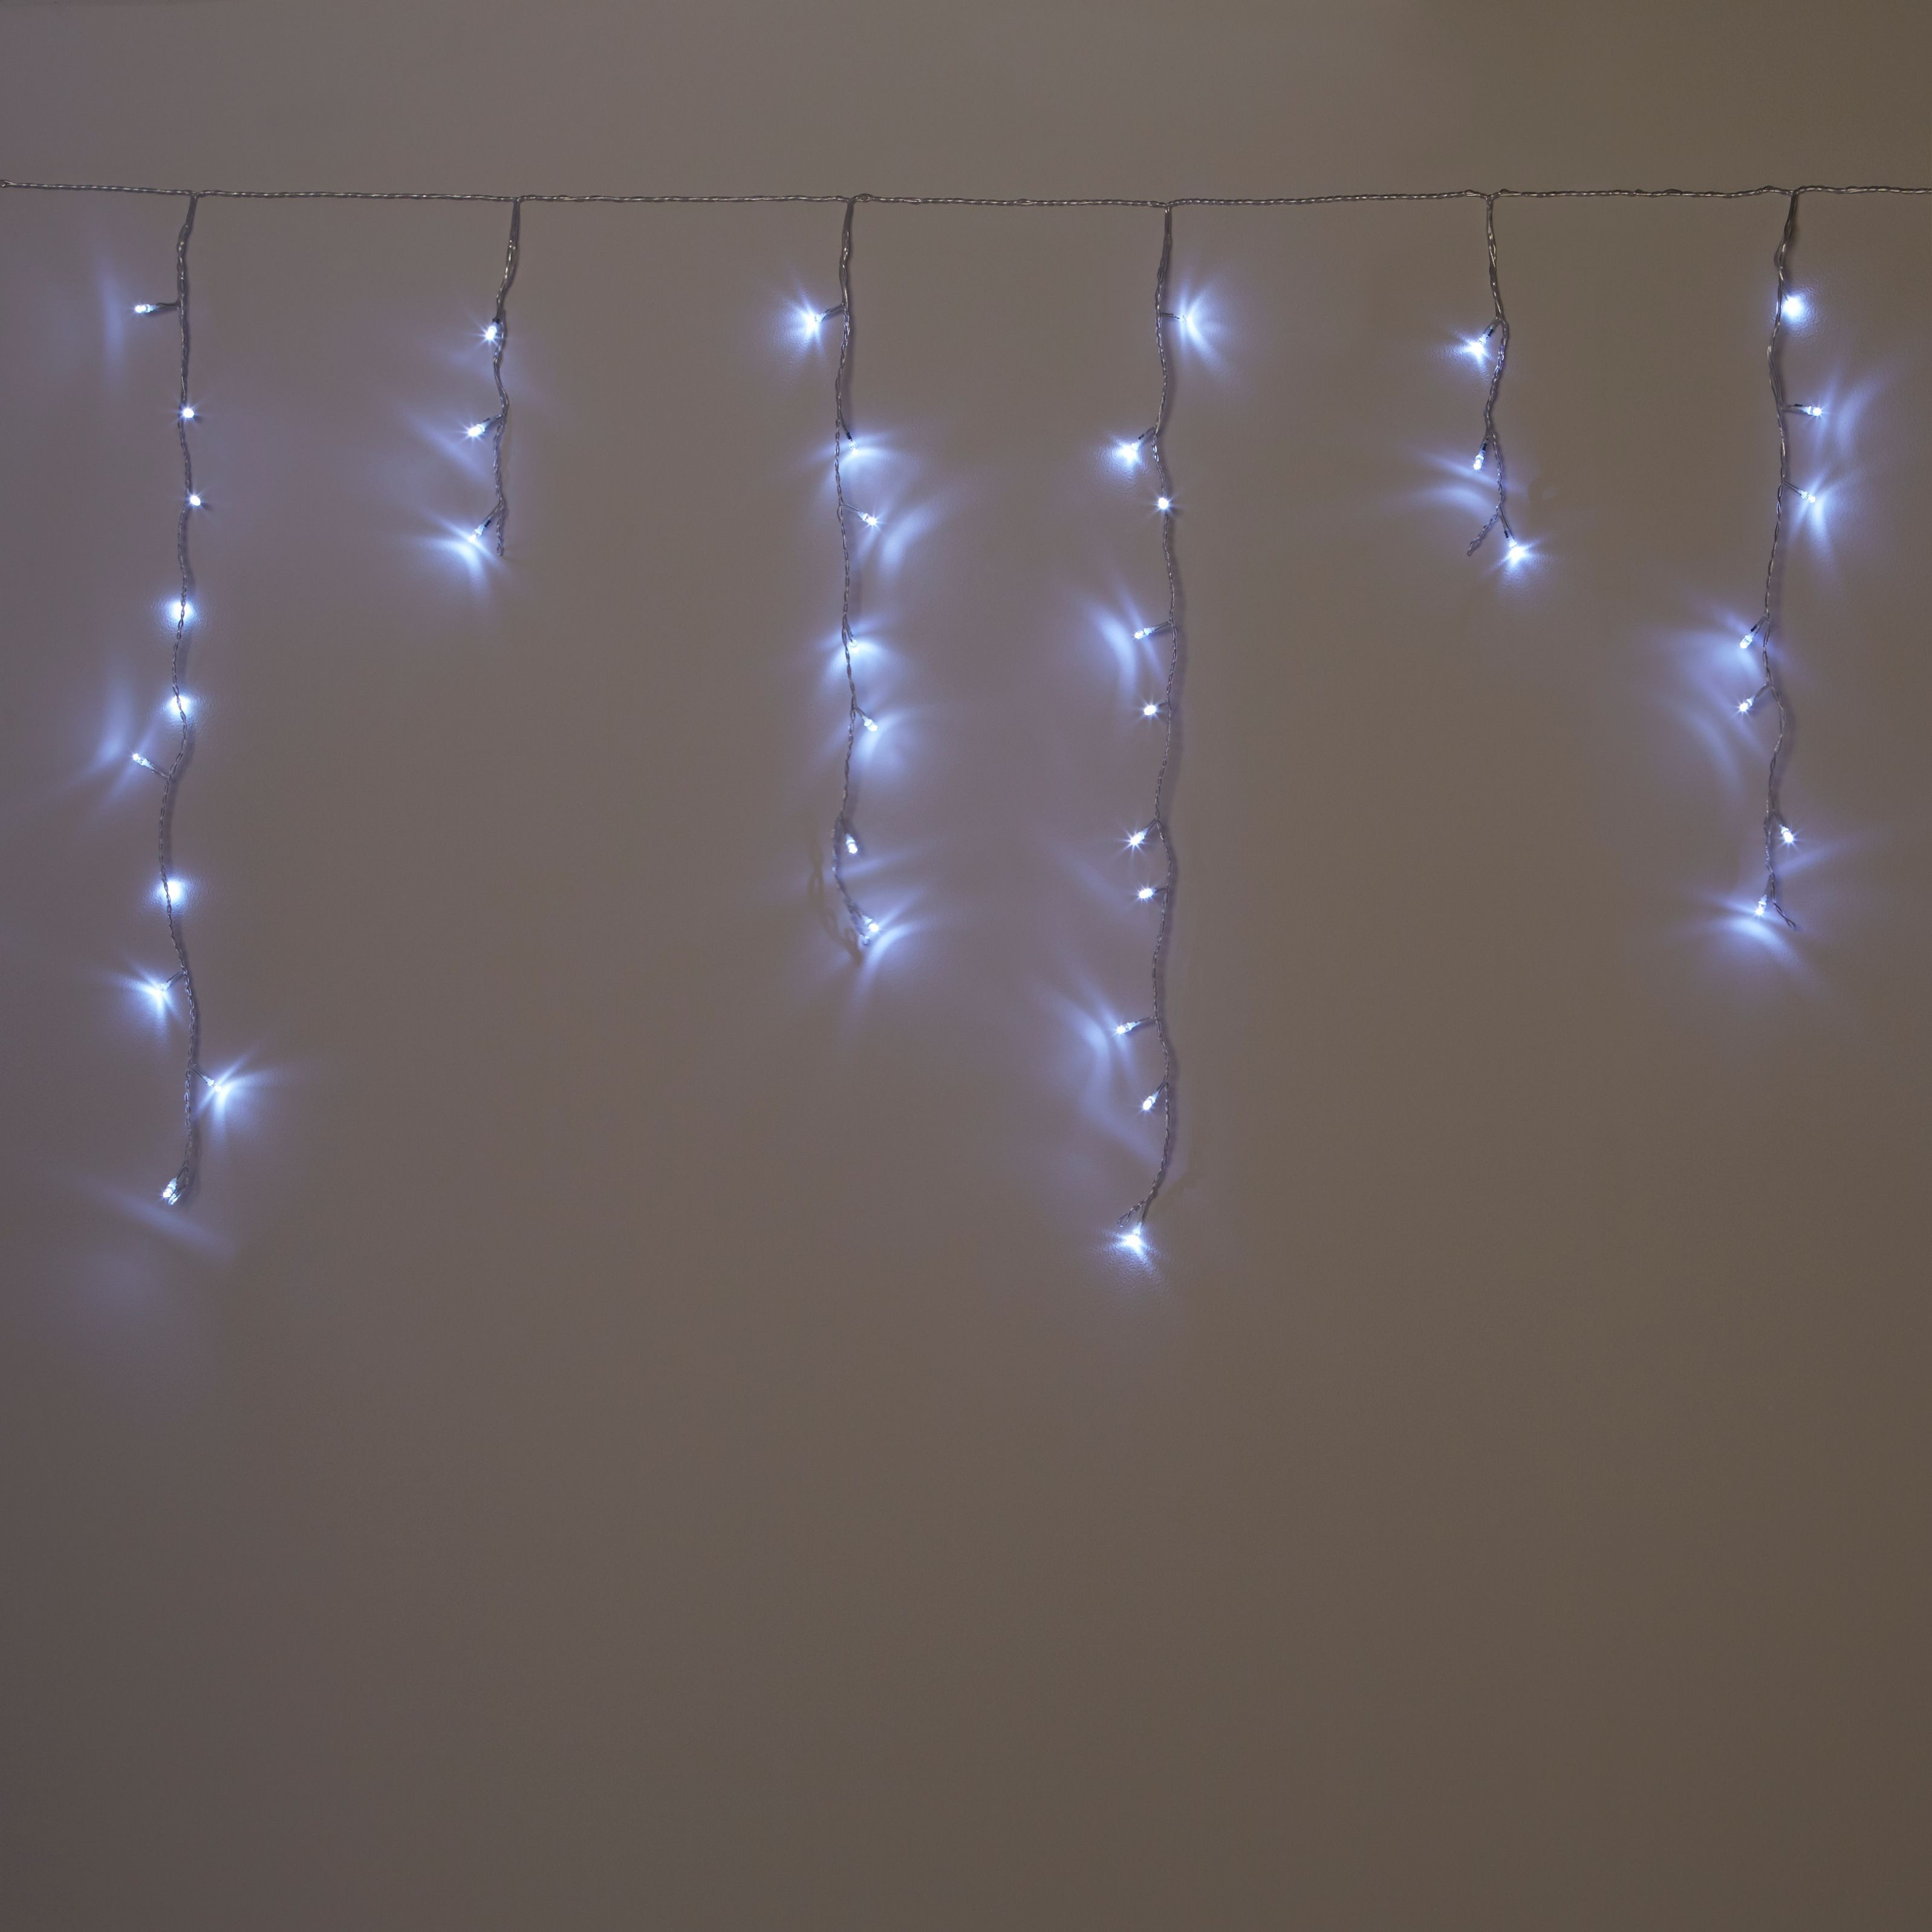 300 White LED Icicle Lights | Departments | DIY at Bu0026Q. & 300 White LED Icicle Lights | Departments | DIY at Bu0026Q